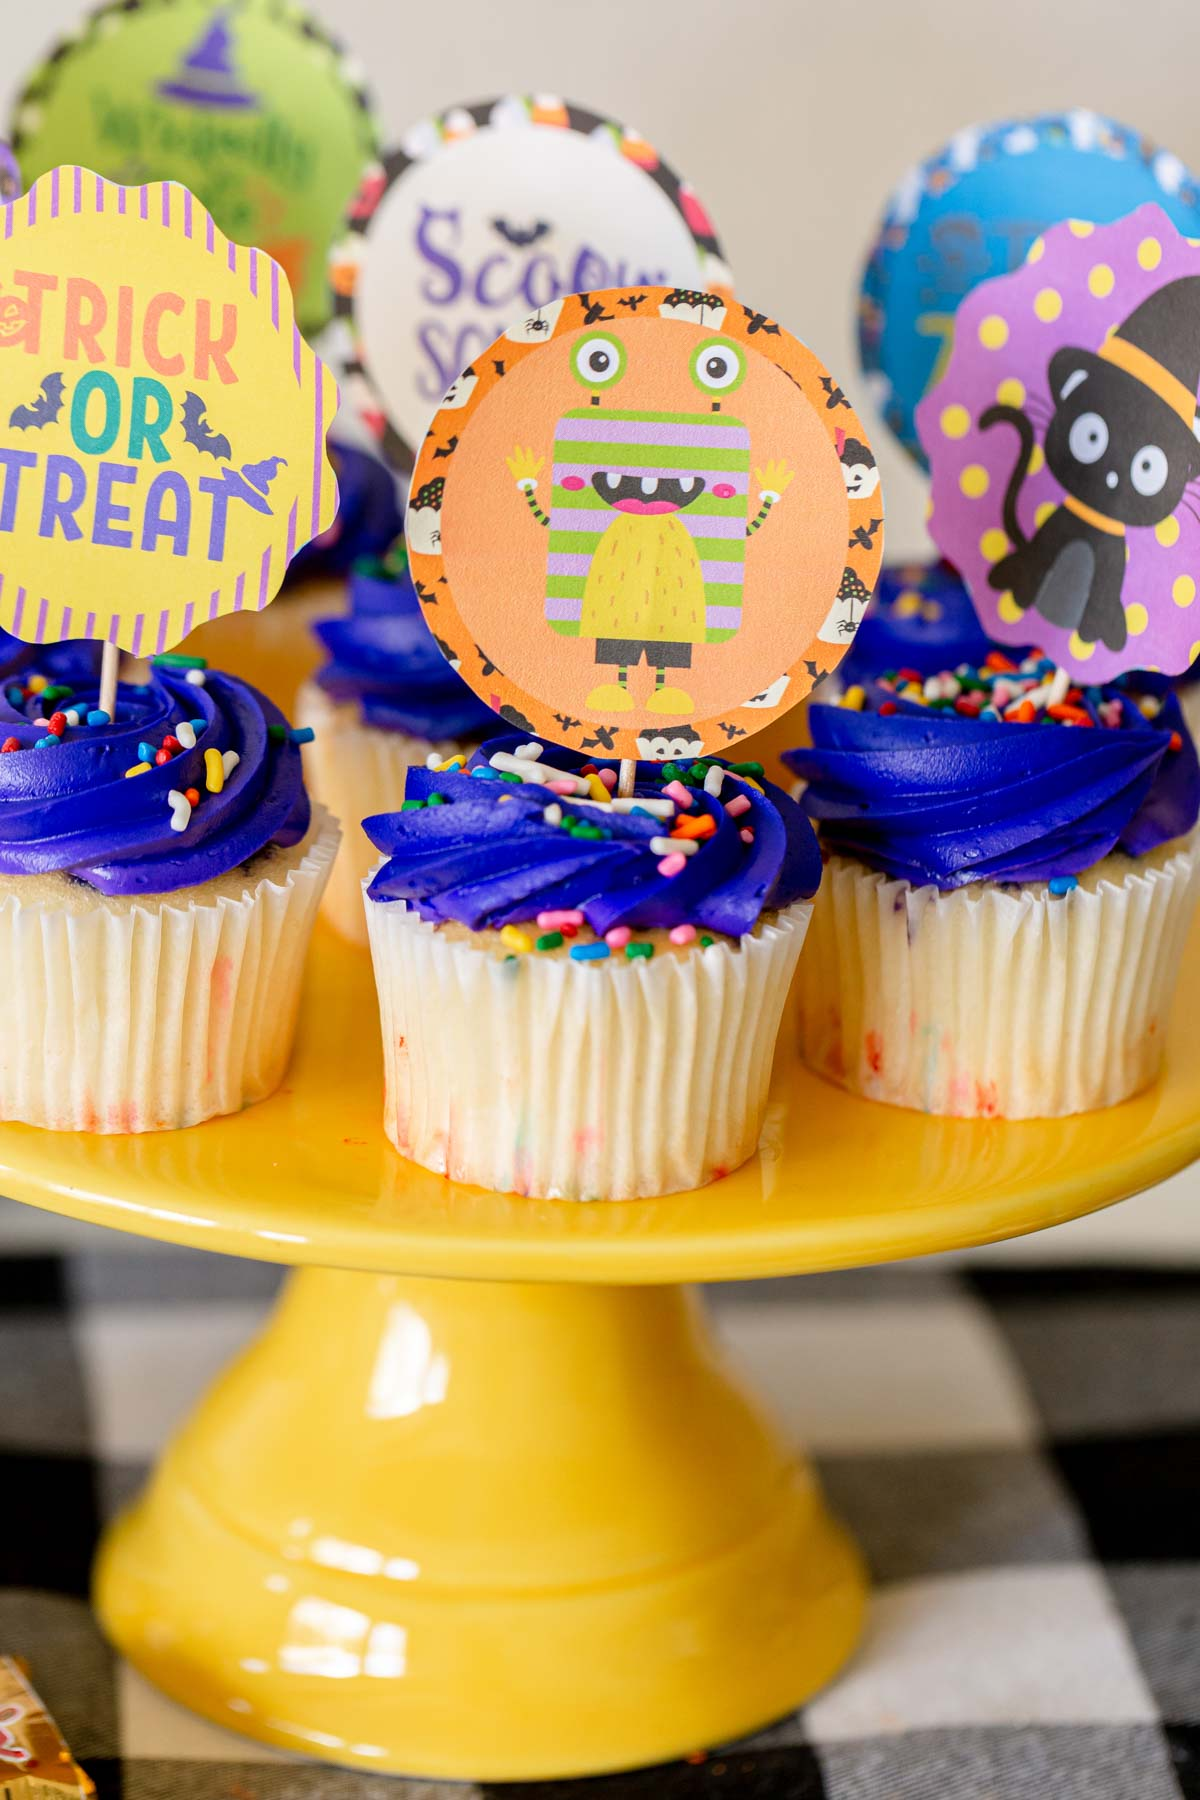 Halloween cupcakes with Halloween cupcake toppers on top